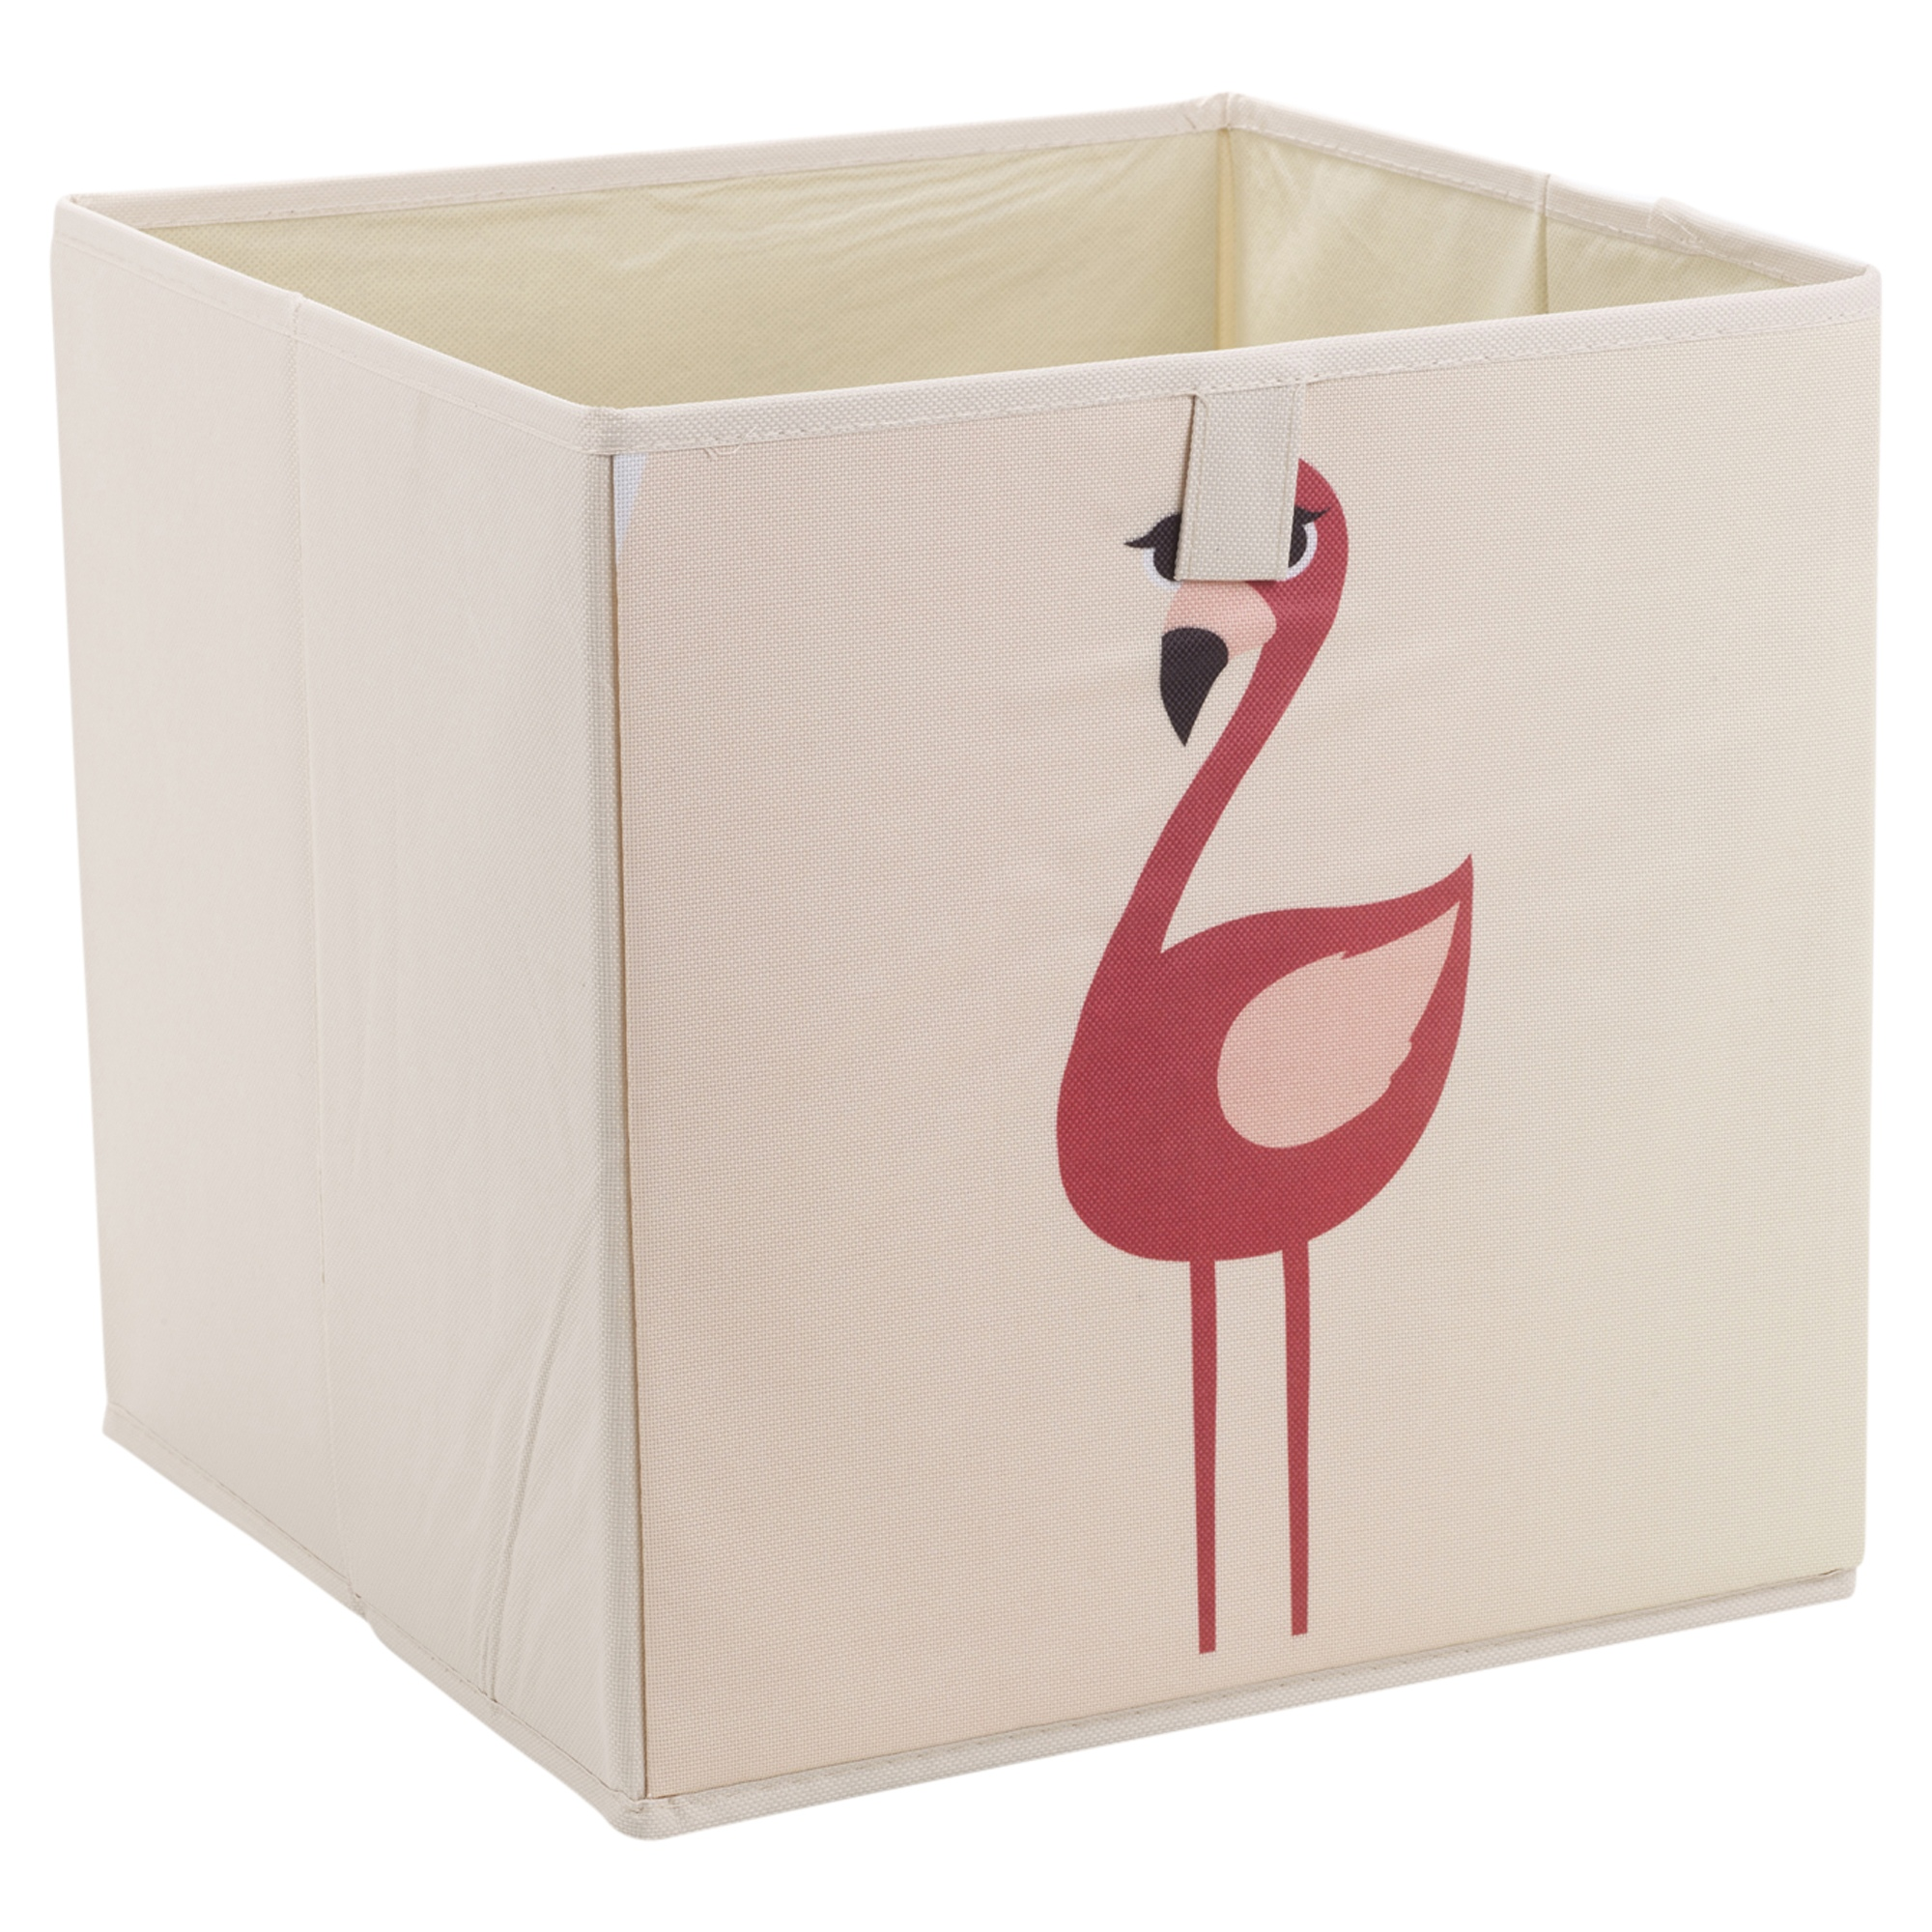 Cute Animal Collapsible Toy Storage Organizer Folding: Kids Toy Animal Storage Box Collapsible Non Woven Fabric